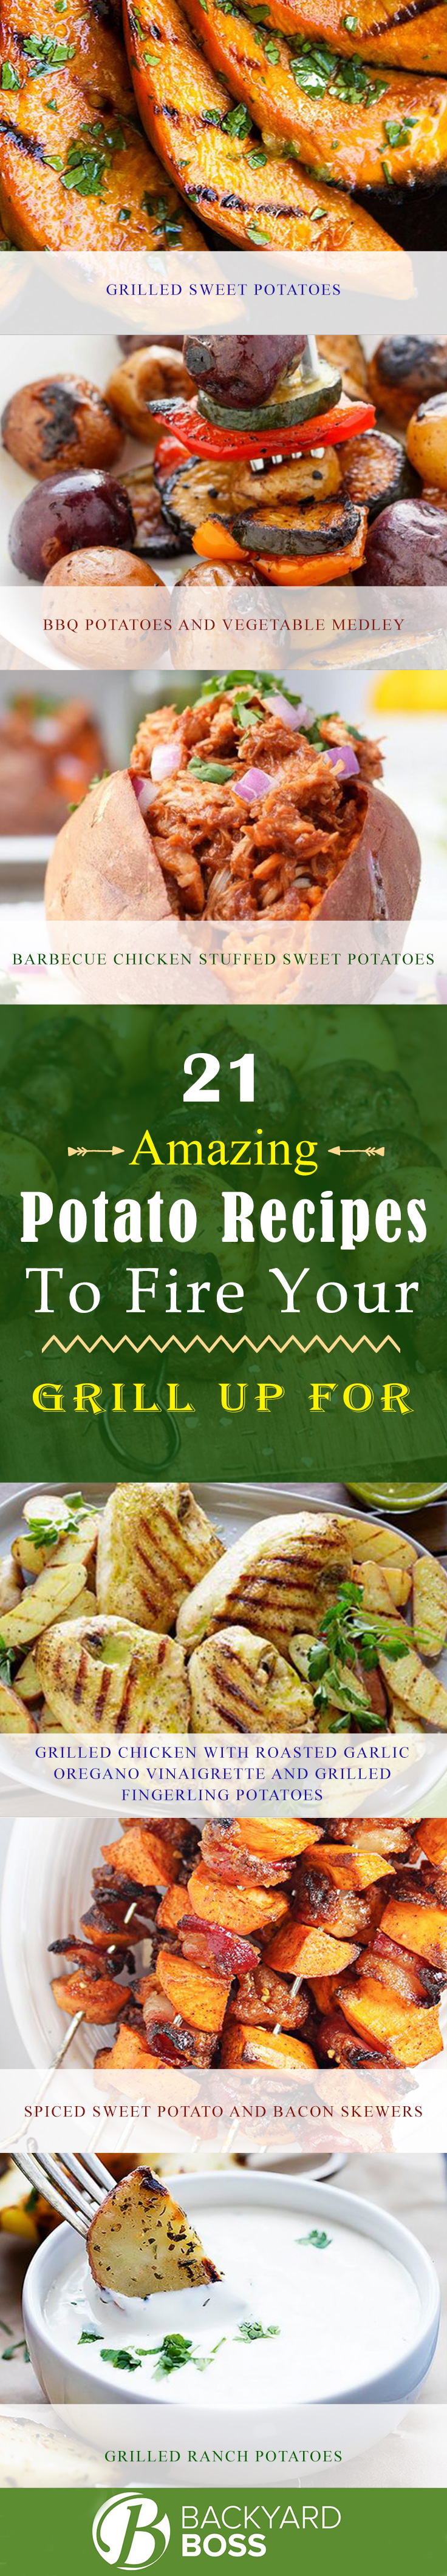 21 amazing potato recipes to fire your grill up for